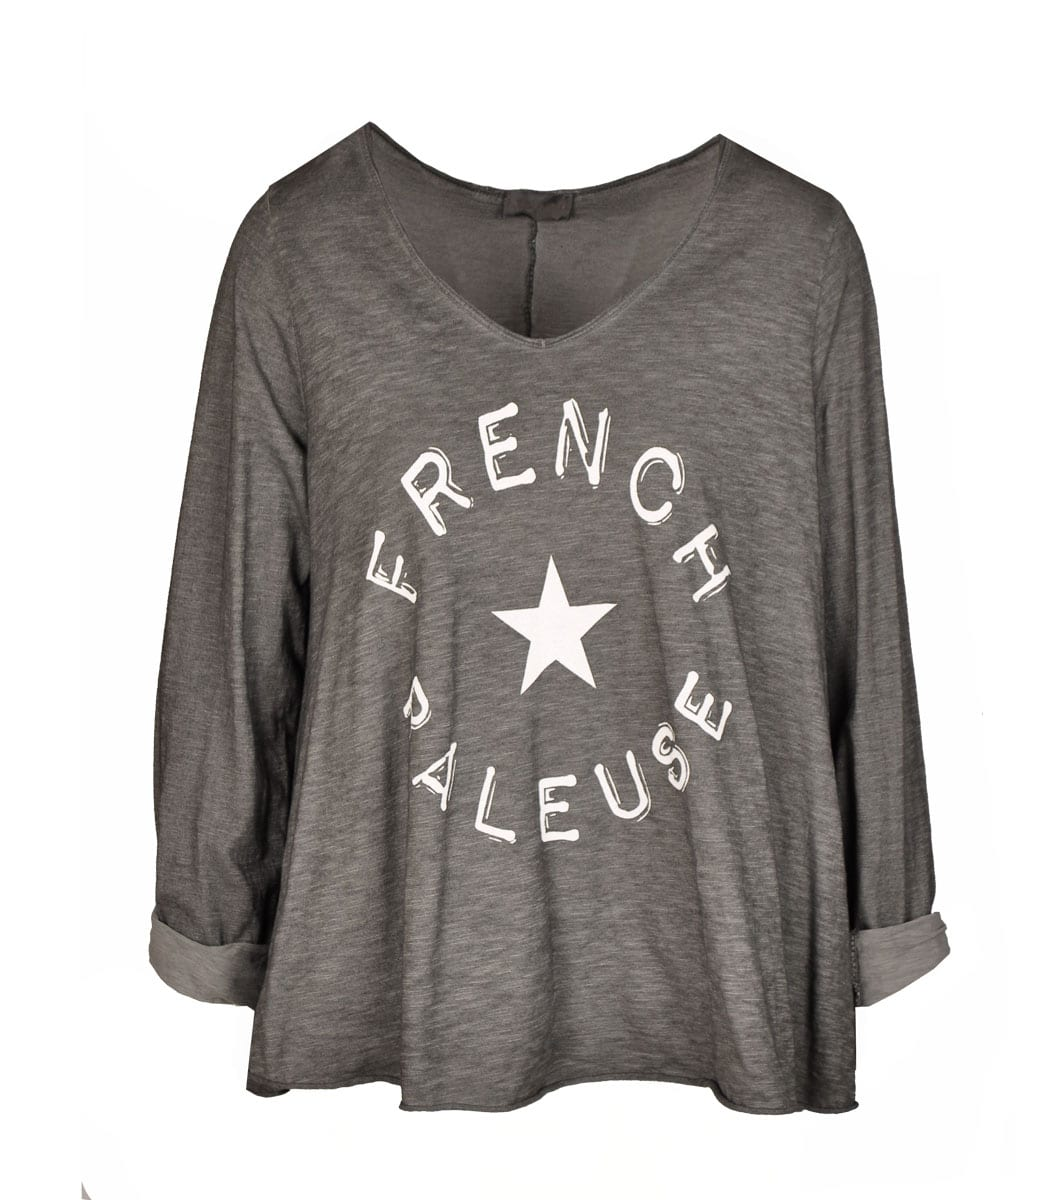 French Raleuse t-shirt